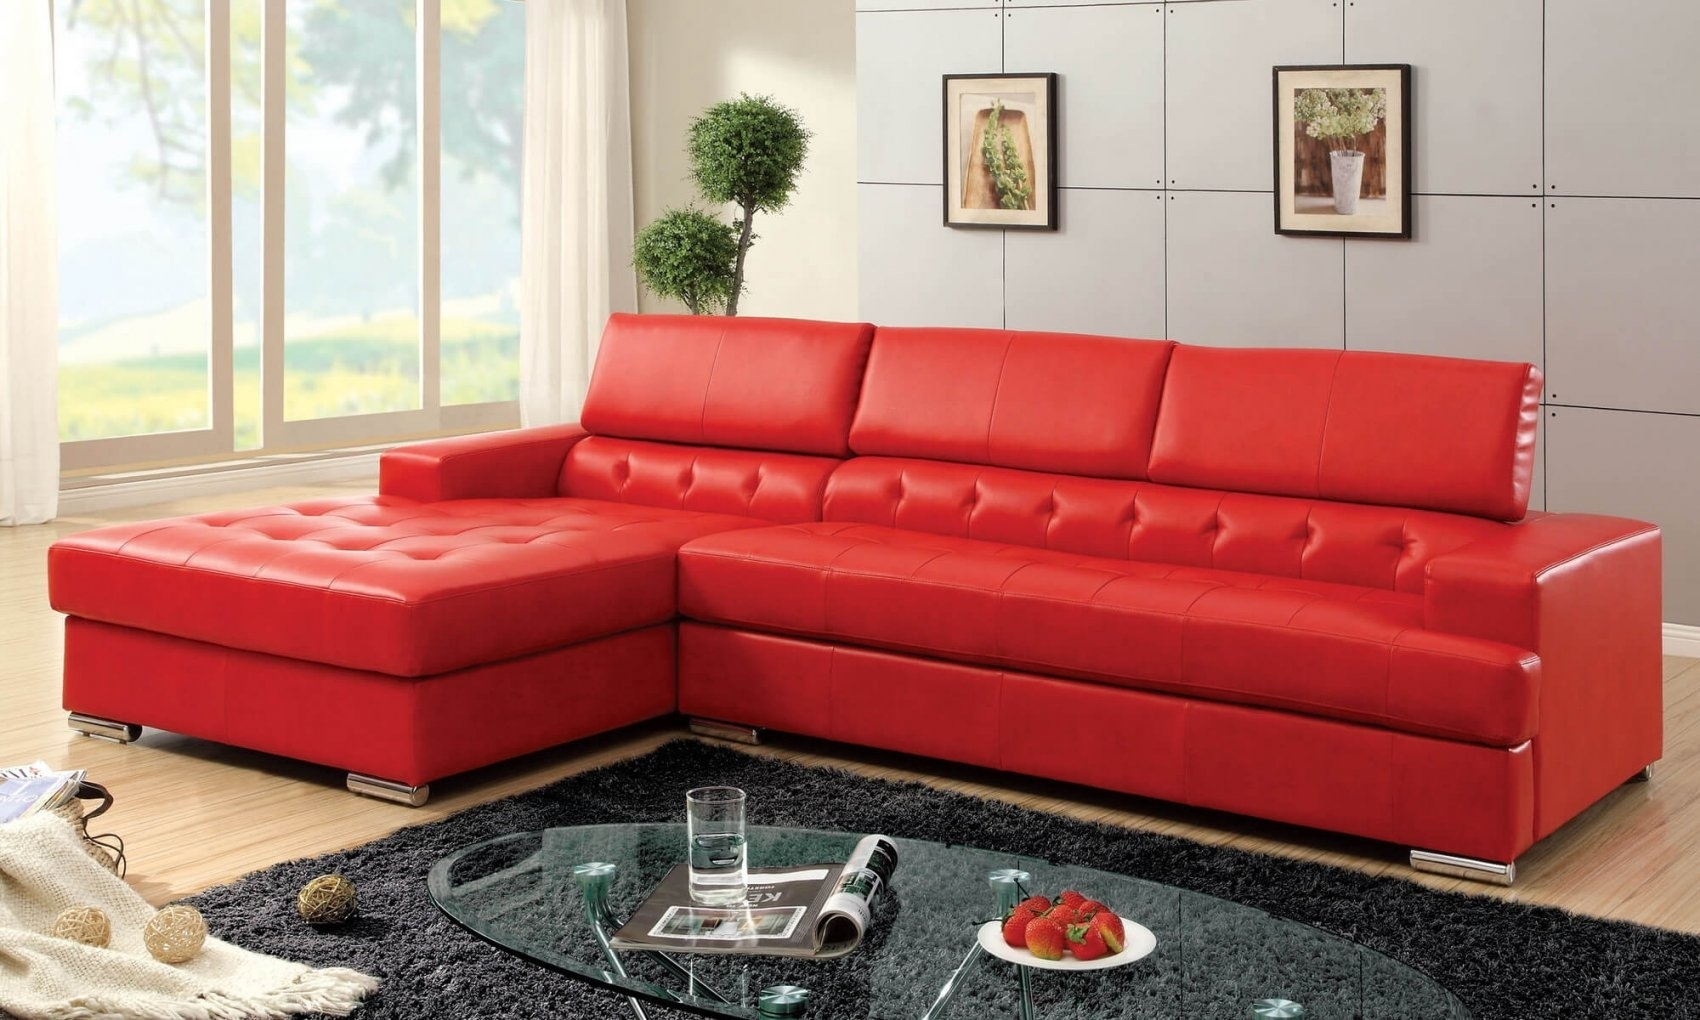 Red Leather Sectional Sofa Contemporary – Best Sectional In In Red Leather Couches (Image 6 of 10)